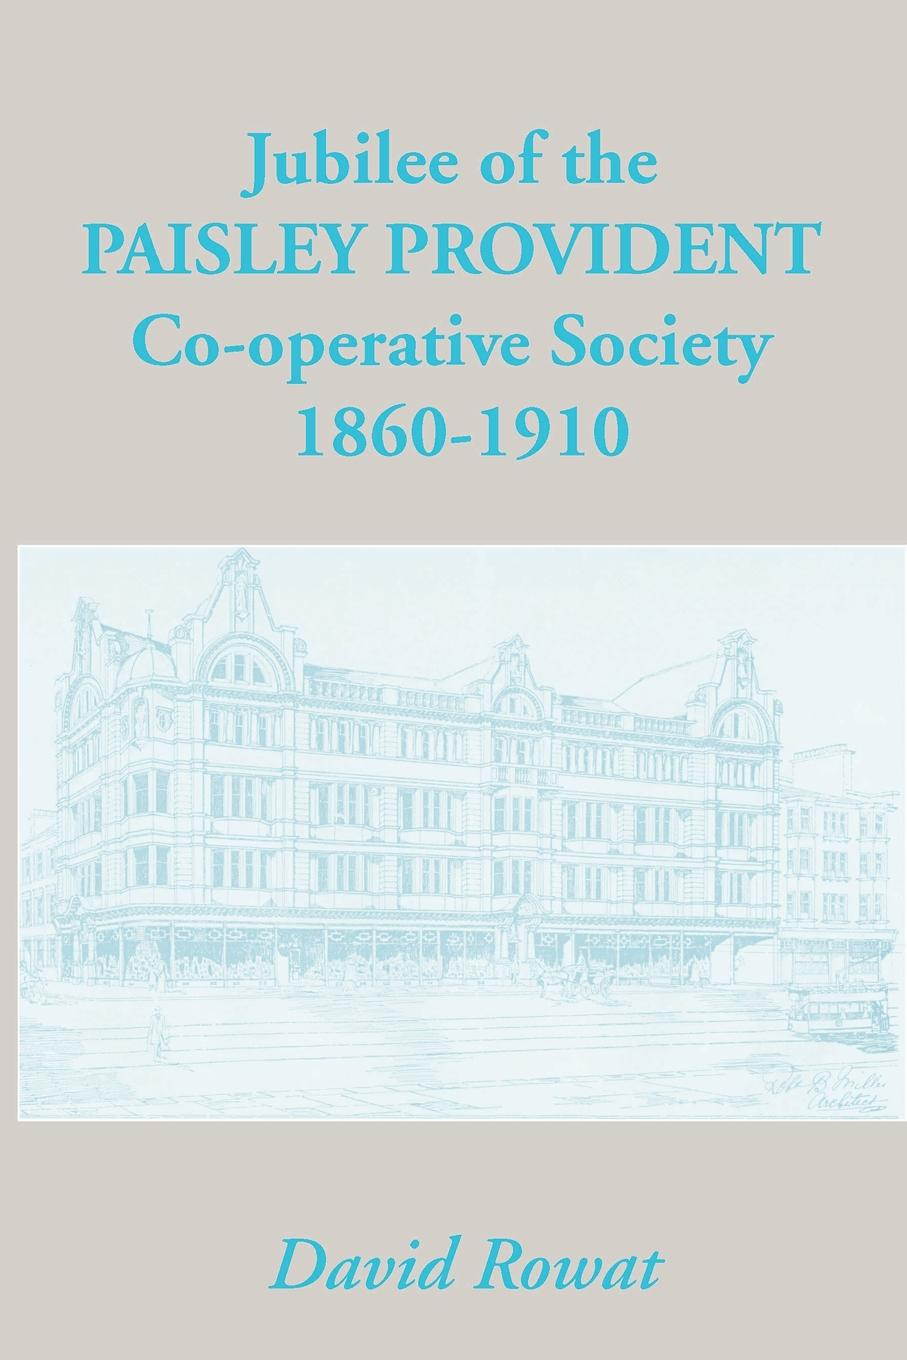 David Rowat Jubilee of the Paisley Provident Co-Operative Society Limited недорго, оригинальная цена